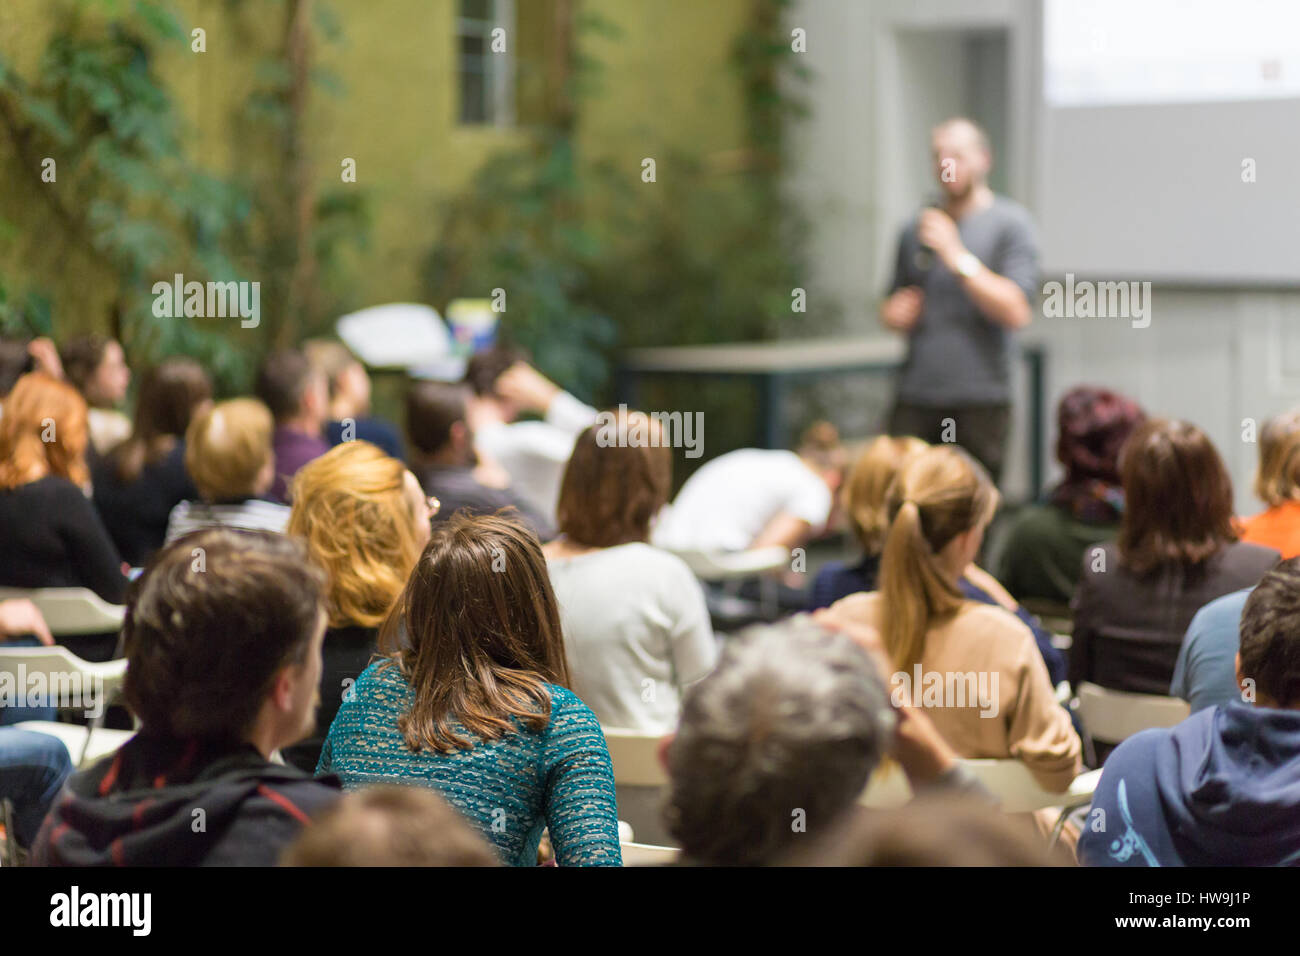 Man giving presentation in lecture hall at university. - Stock Image